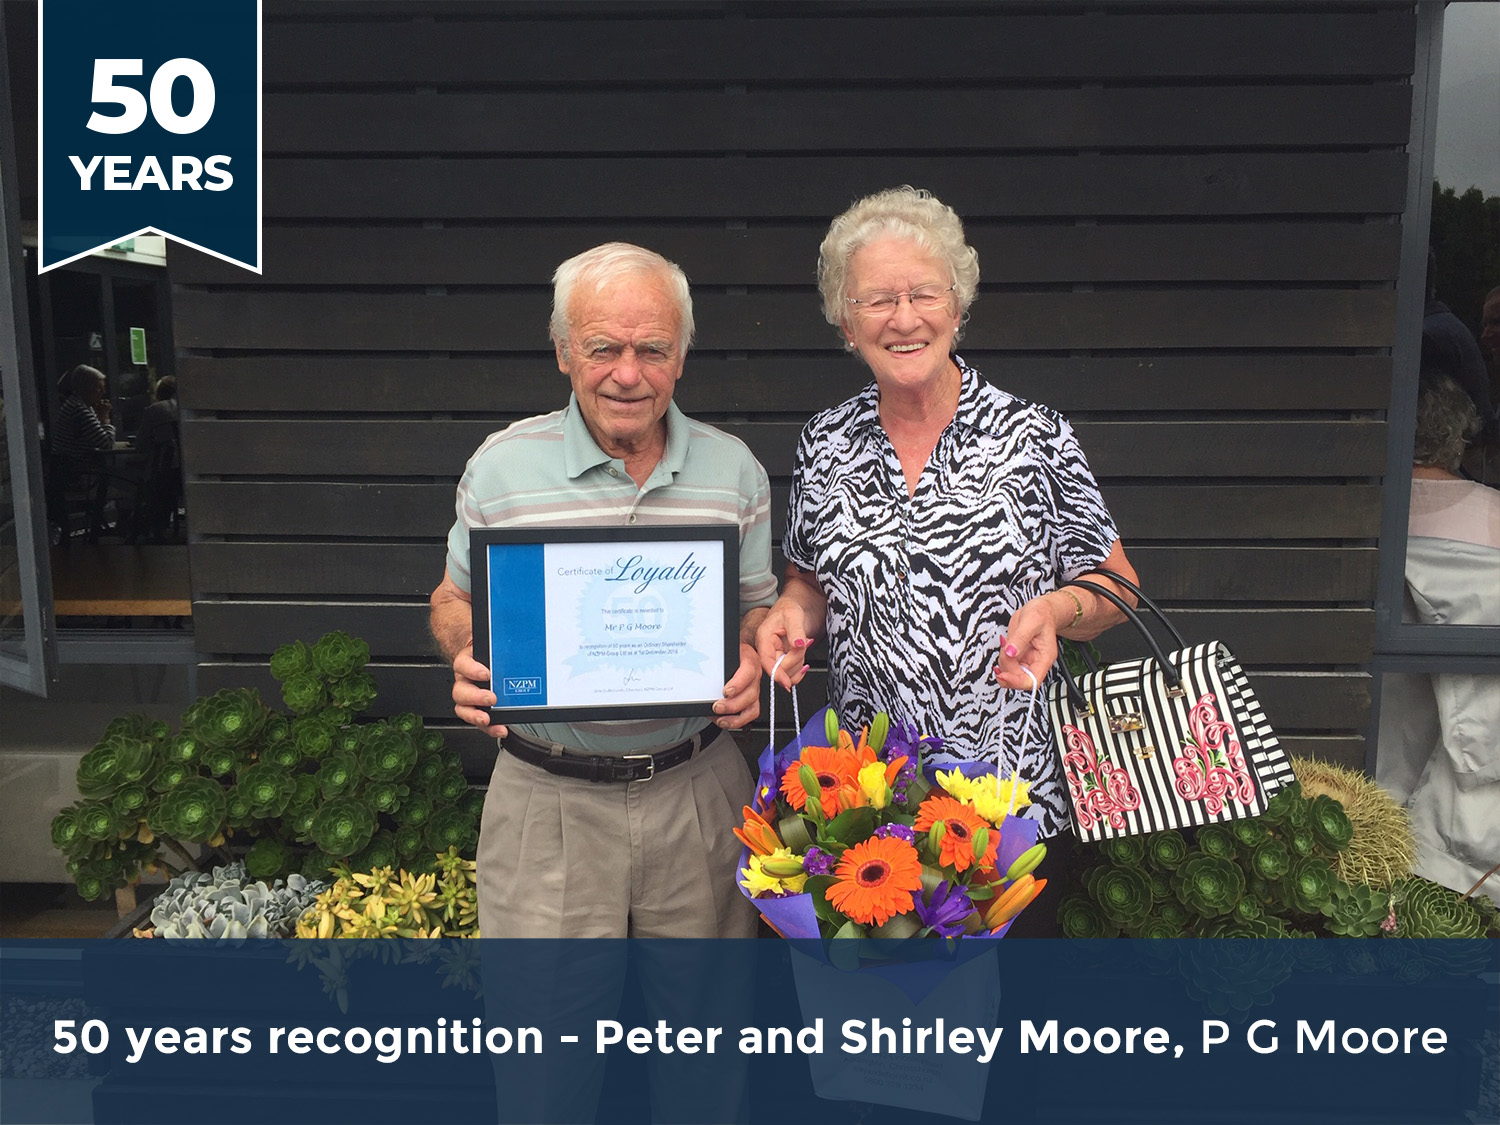 P G Moore 50 year recognition